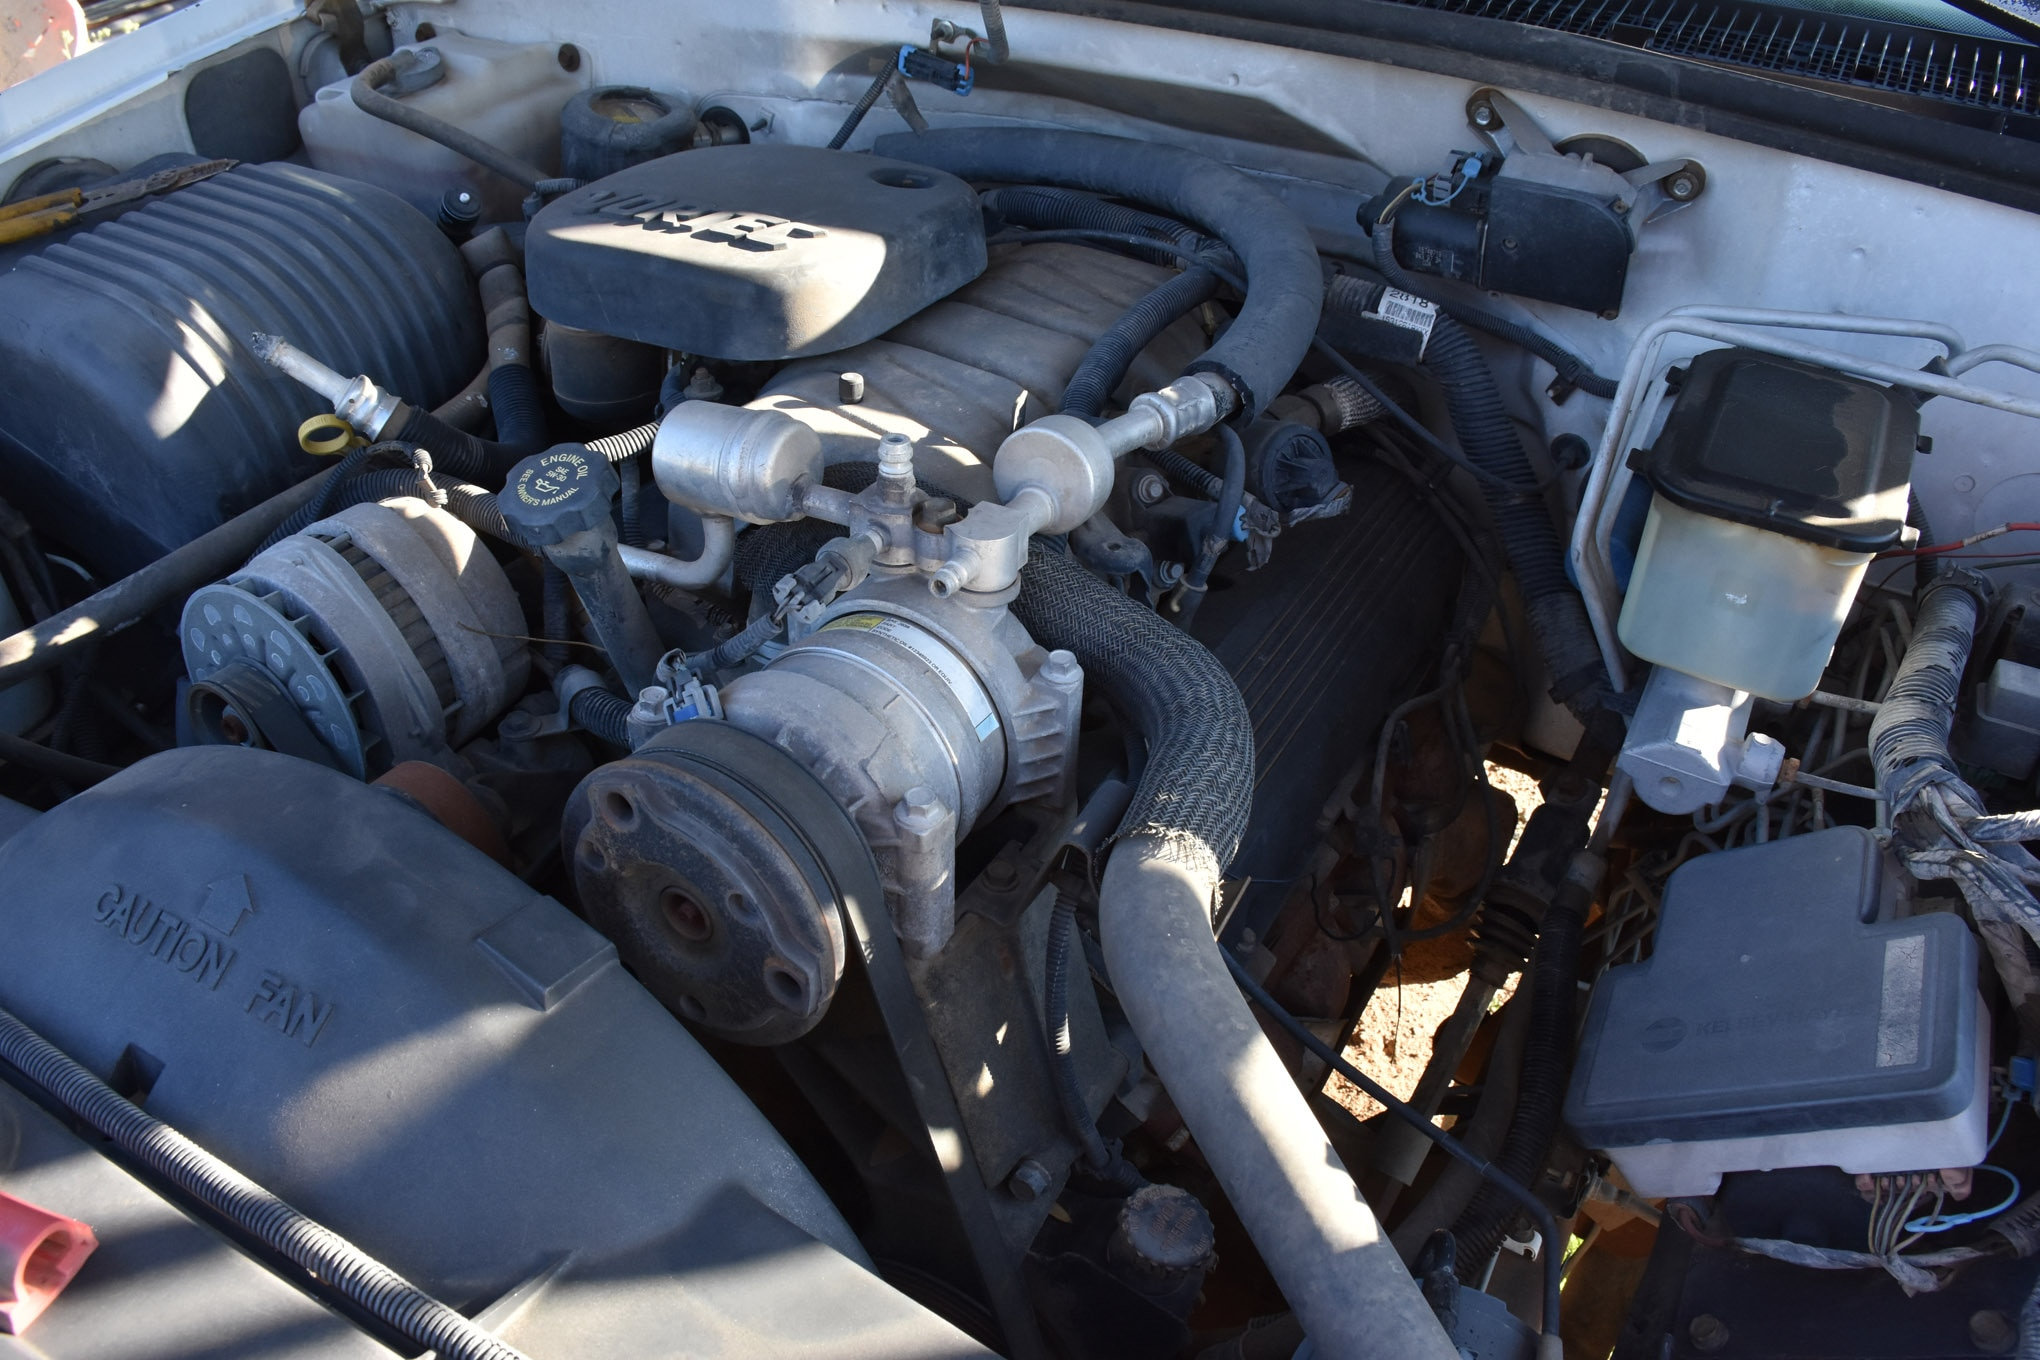 "Under the hood of the beast lies a Vortec GM 454. I know how to start an old carbureted engine that has been sitting for 10 years, but an old multiport fuel-injected engine is different. If the engine runs without a knock we are in business and the nearly free junkyard monster truck can become a reality. We know it needs a battery, spark plug wires, and some fresh gas at least. We also talked to GM expert Stephen Watson at Offroad Design (<a href=""http://offroaddesign.com/"" title="""" target=""_blank"" rel=""nofollow"">offroaddesign.com</a>) for tips on what to try with this old engine. Stay tuned!"